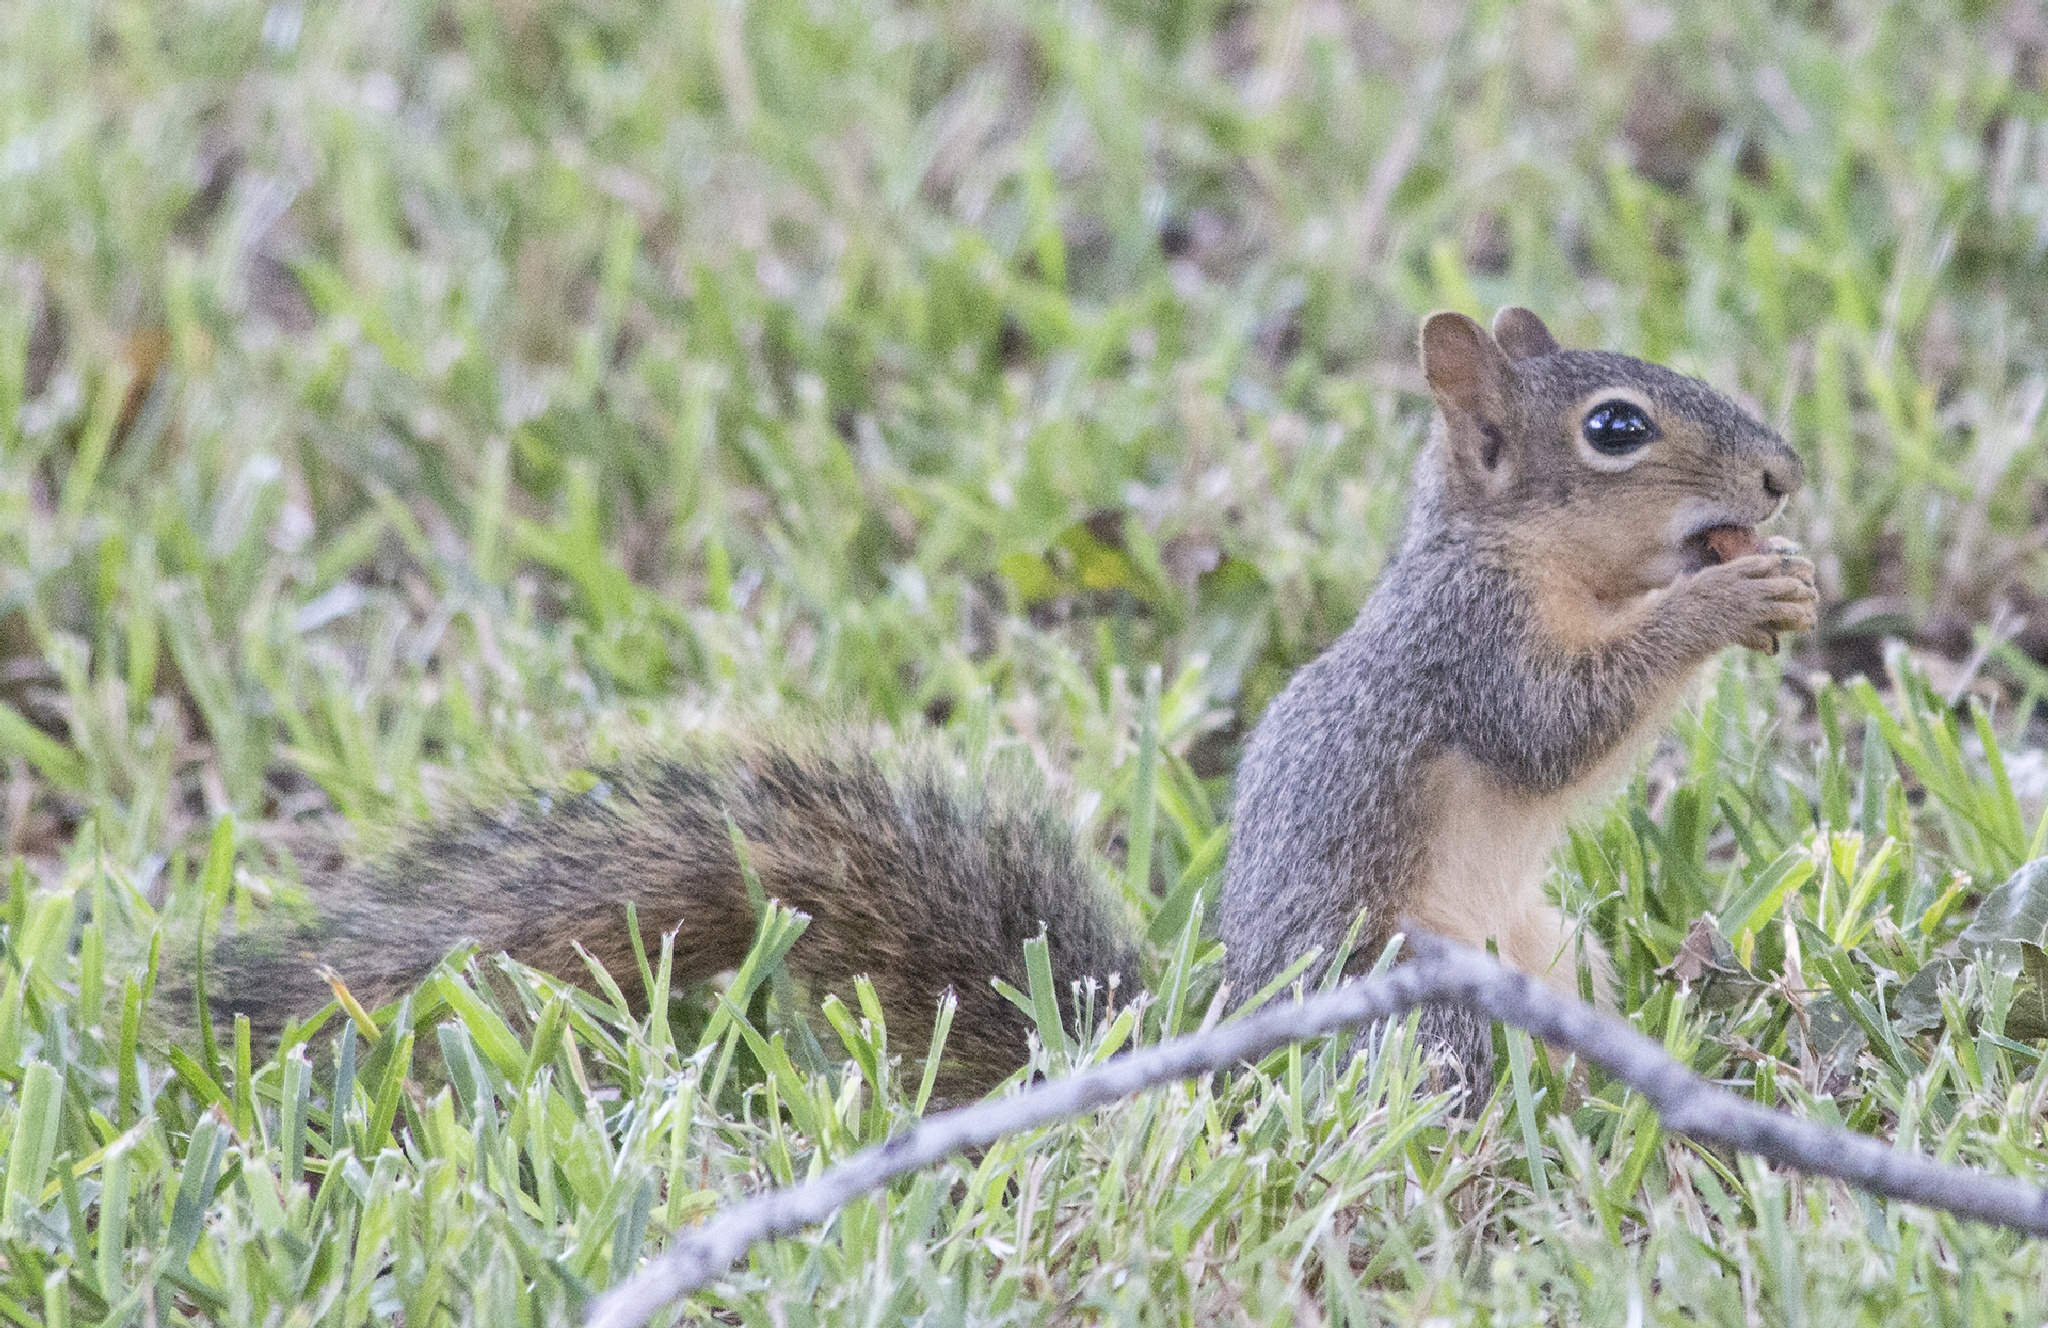 Squirrle 5 by Wade Pitcher